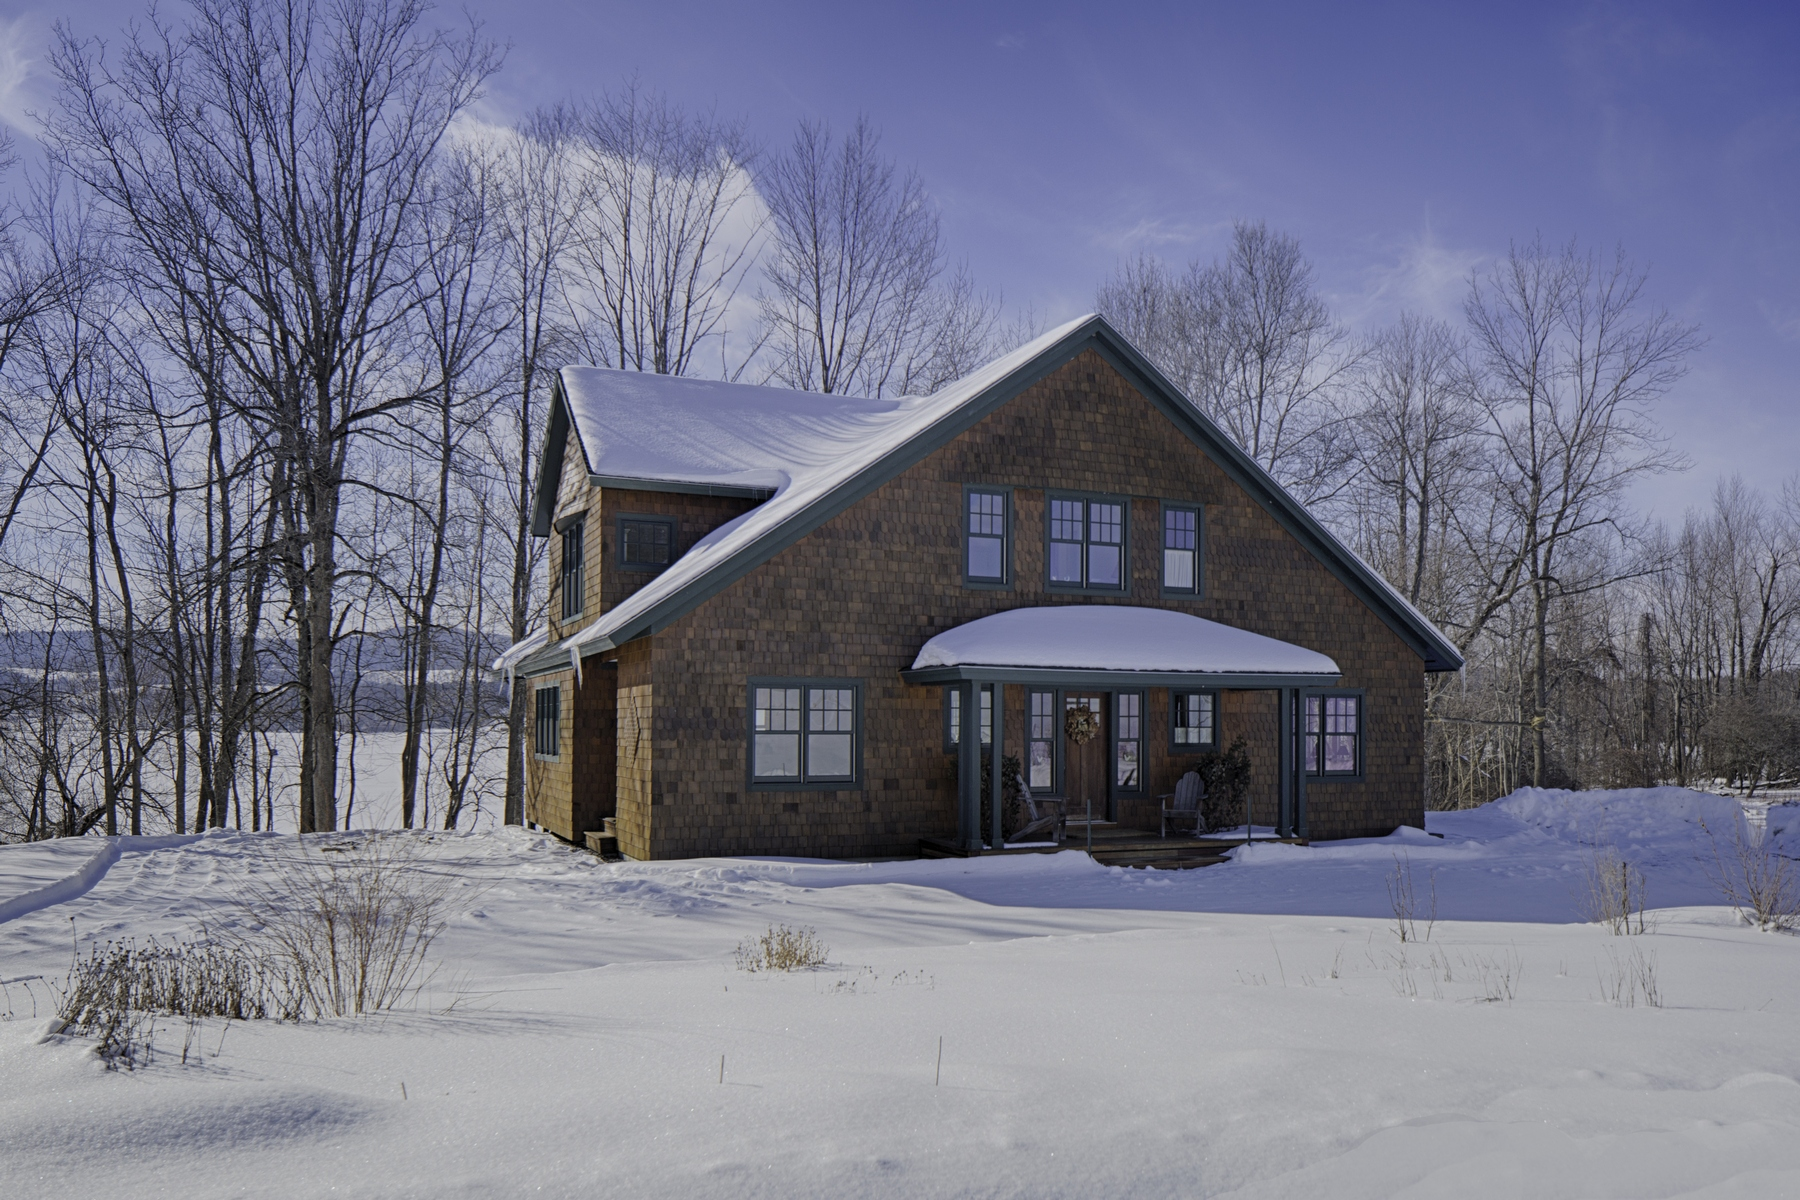 Single Family Home for Sale at Elegant and Serene Home on Otsego Lake 418 Public Landing Rd Cooperstown, New York 13326 United States